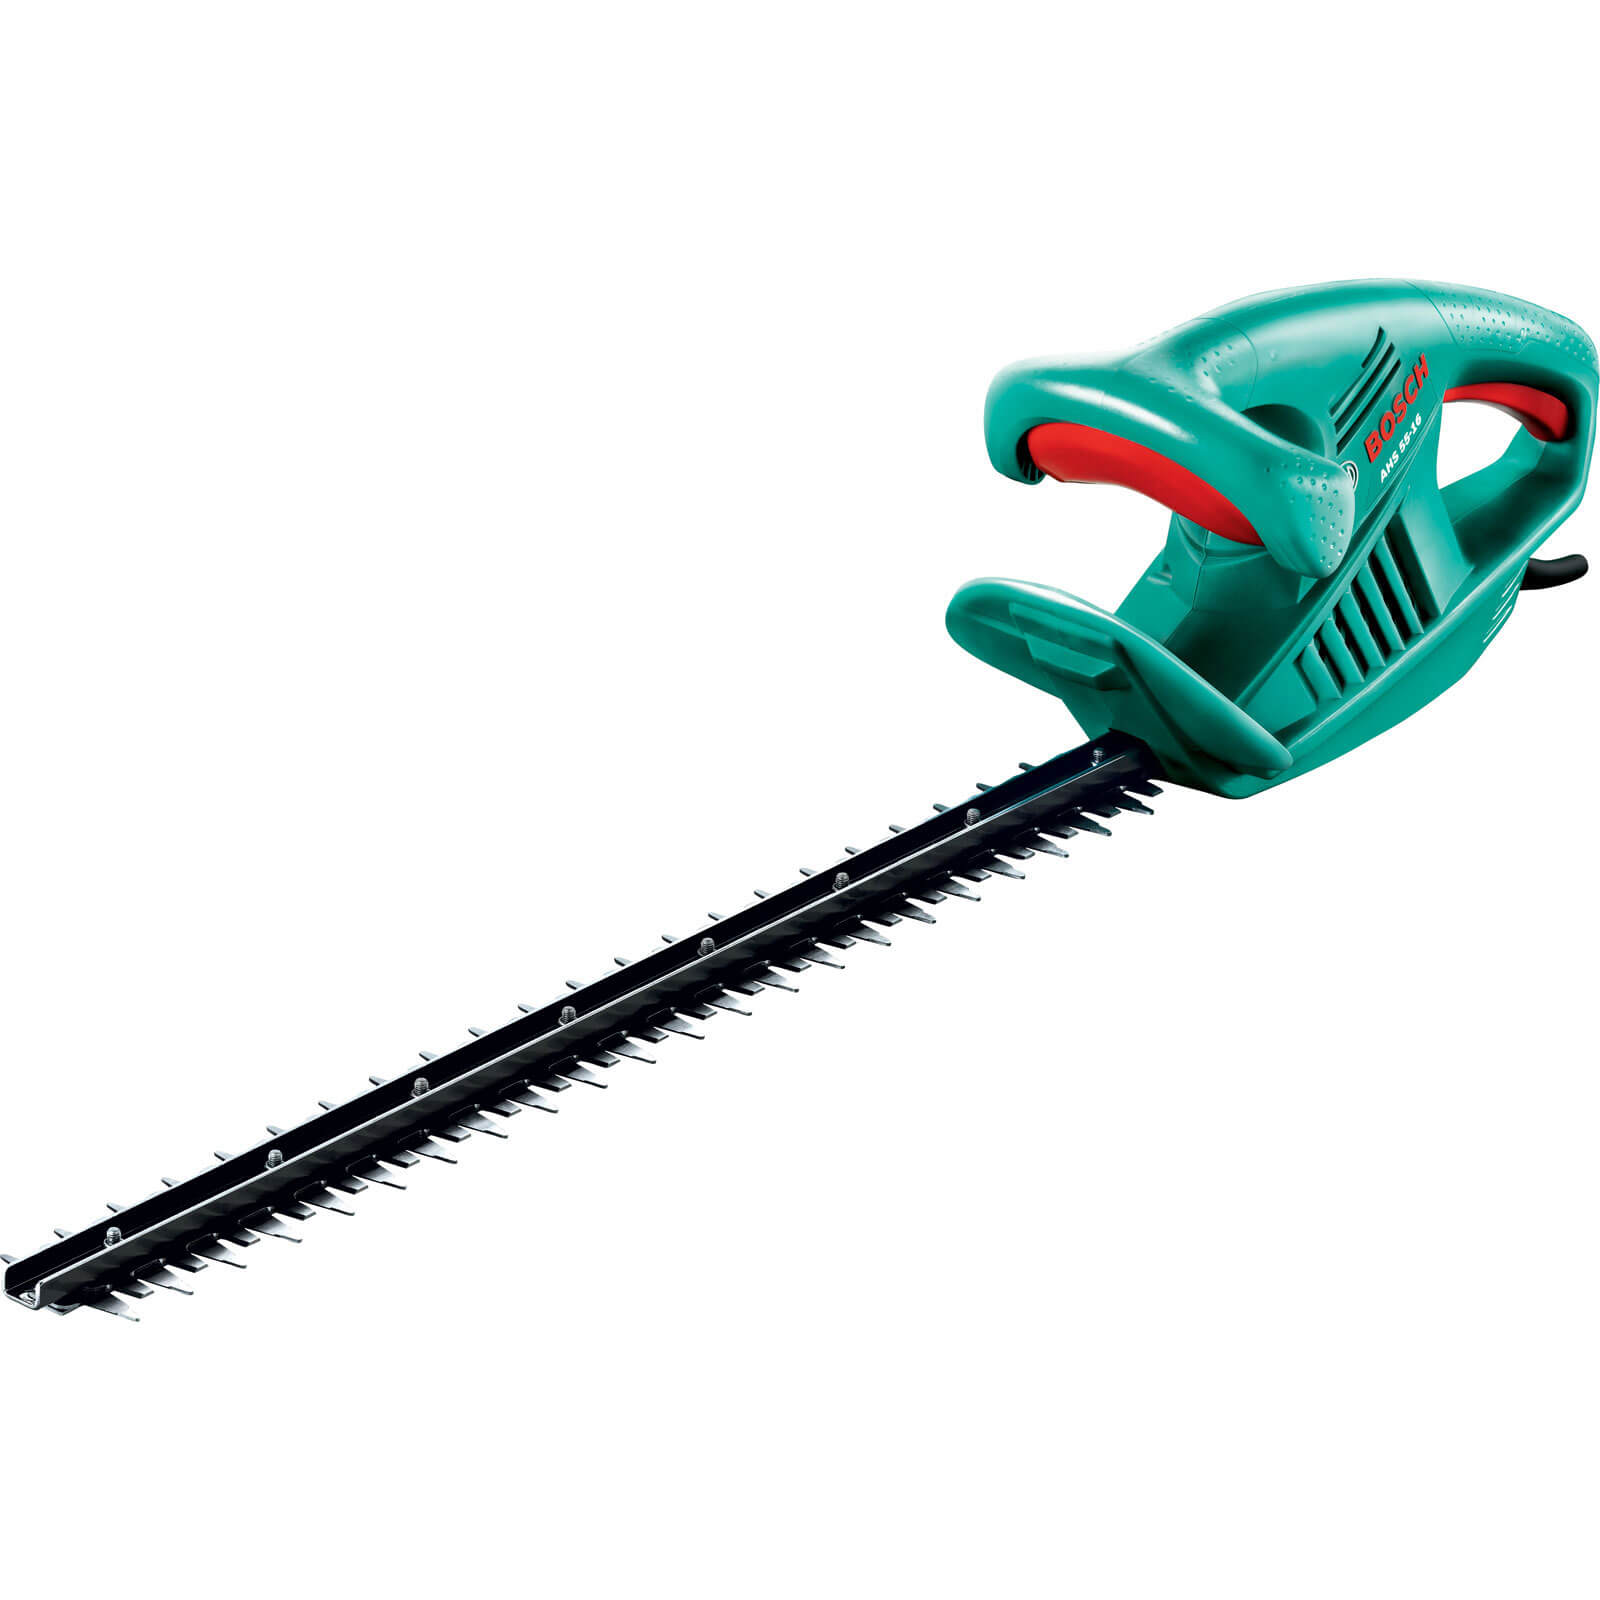 Bosch AHS 55-16 Electric Hedge Trimmer 550mm Blade Length 450w 240v